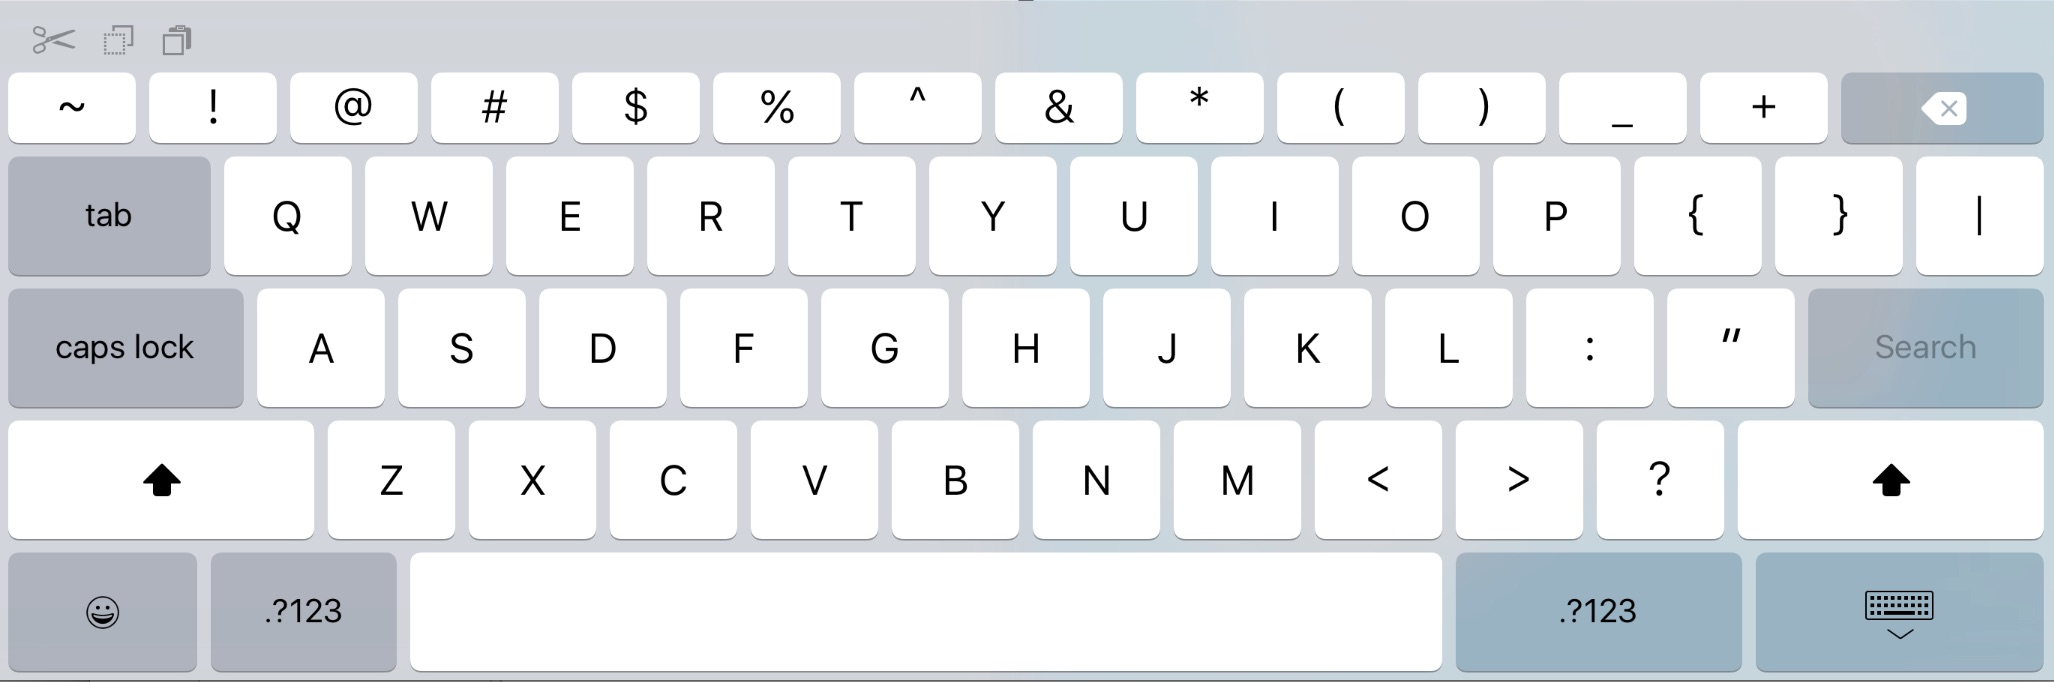 Redesigned iOS9 keyboard hints at an 'iPad Pro'